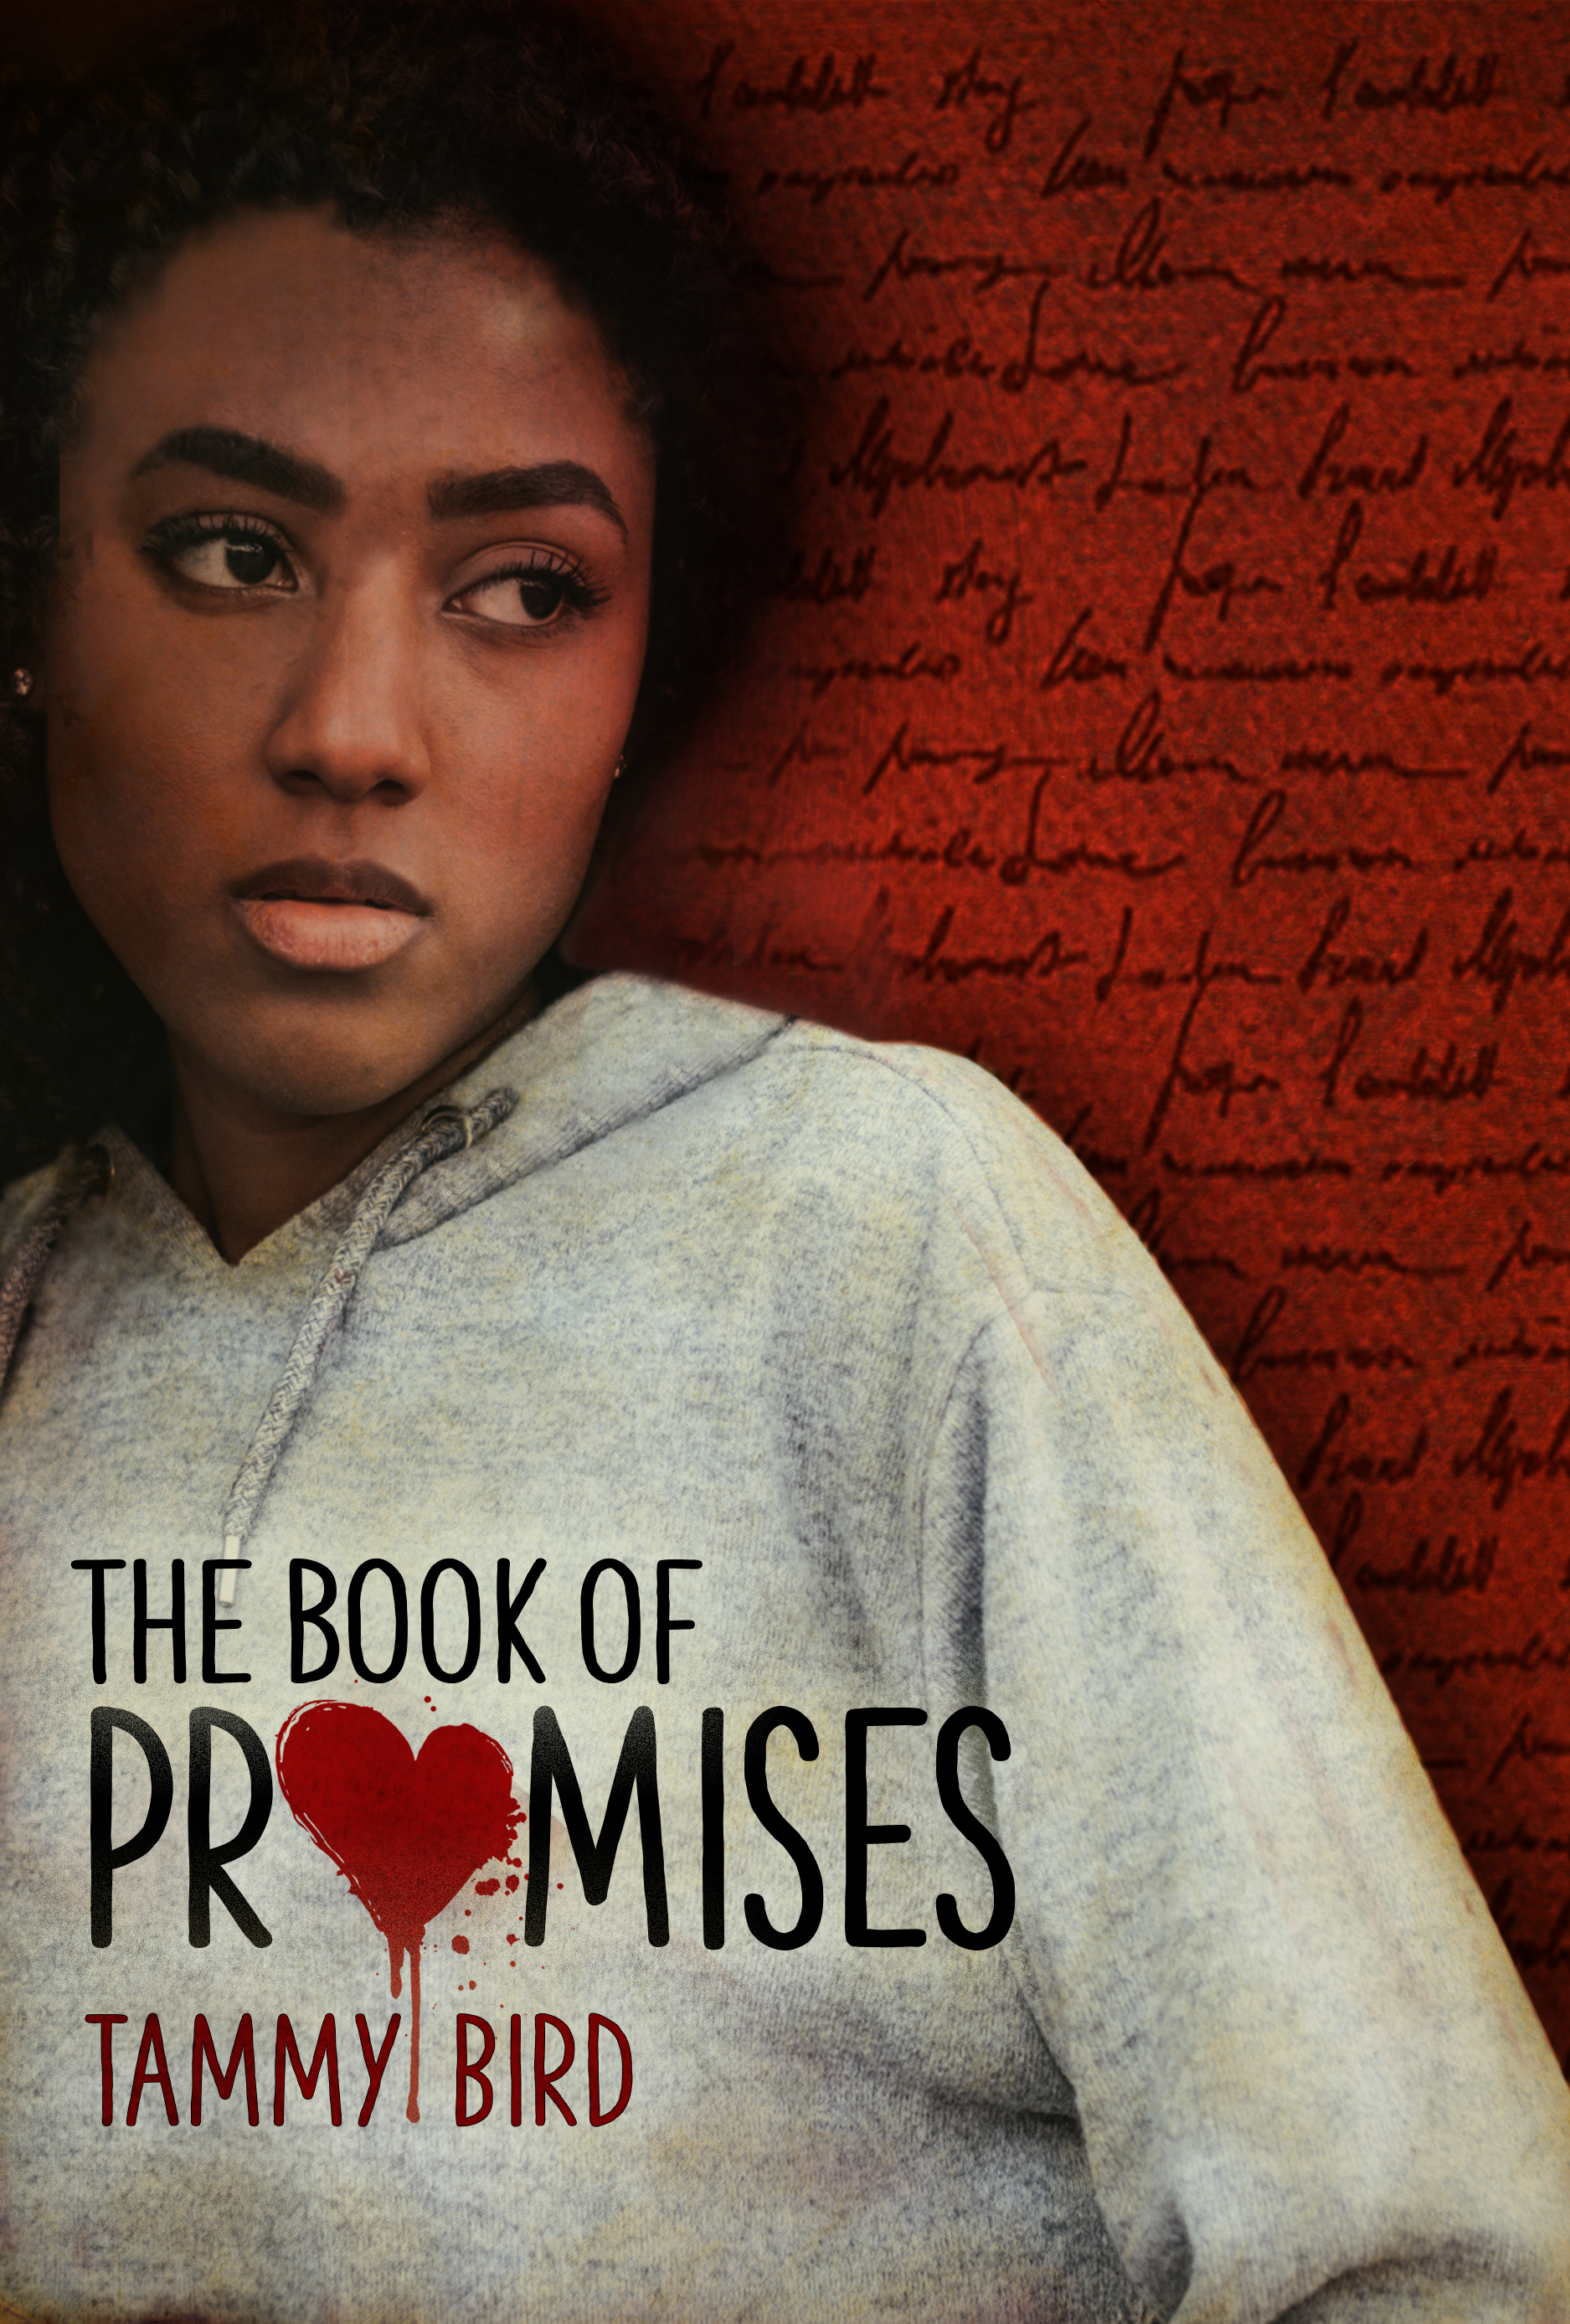 TheBookOfPromises_FlashpointCOVER.jpg